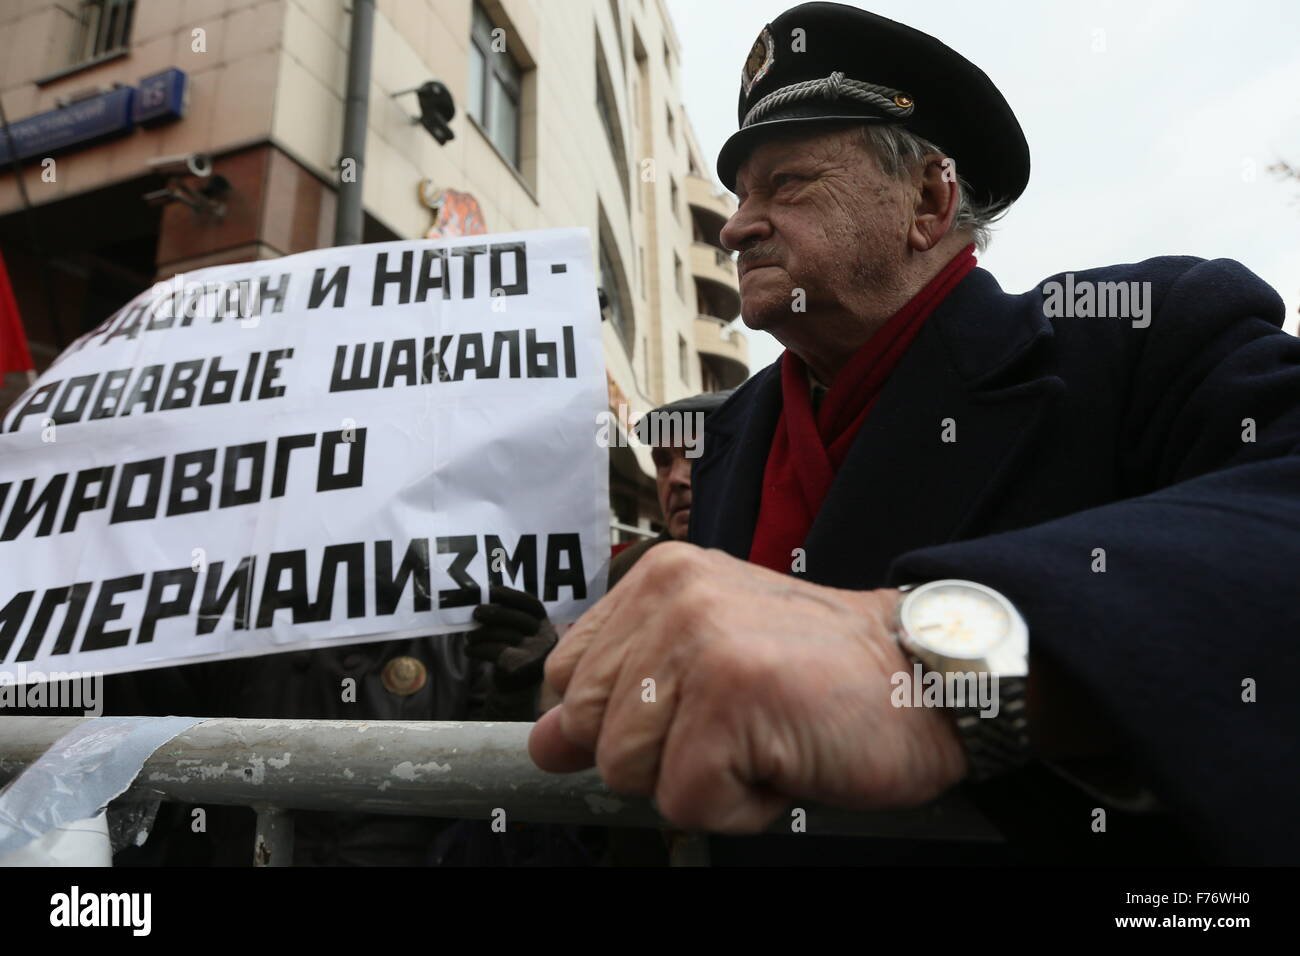 MOSCOW, RUSSIA. NOVEMBER 26, 2015. A man holds a sign with a message reading 'Erdogan and the NATO are jackals - Stock Image